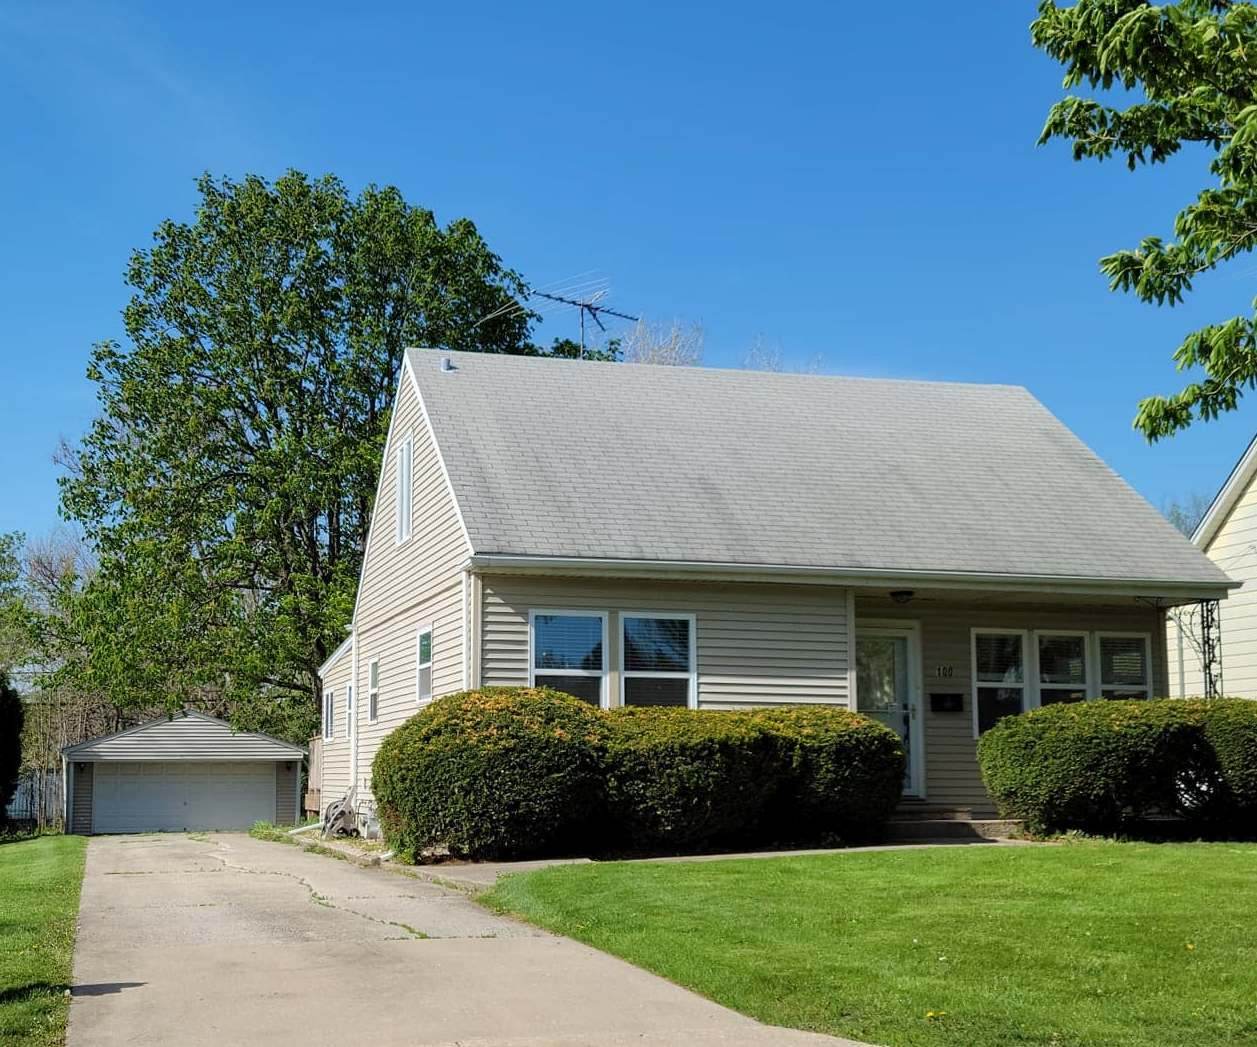 100 2nd Street, Downers Grove, Il 60515